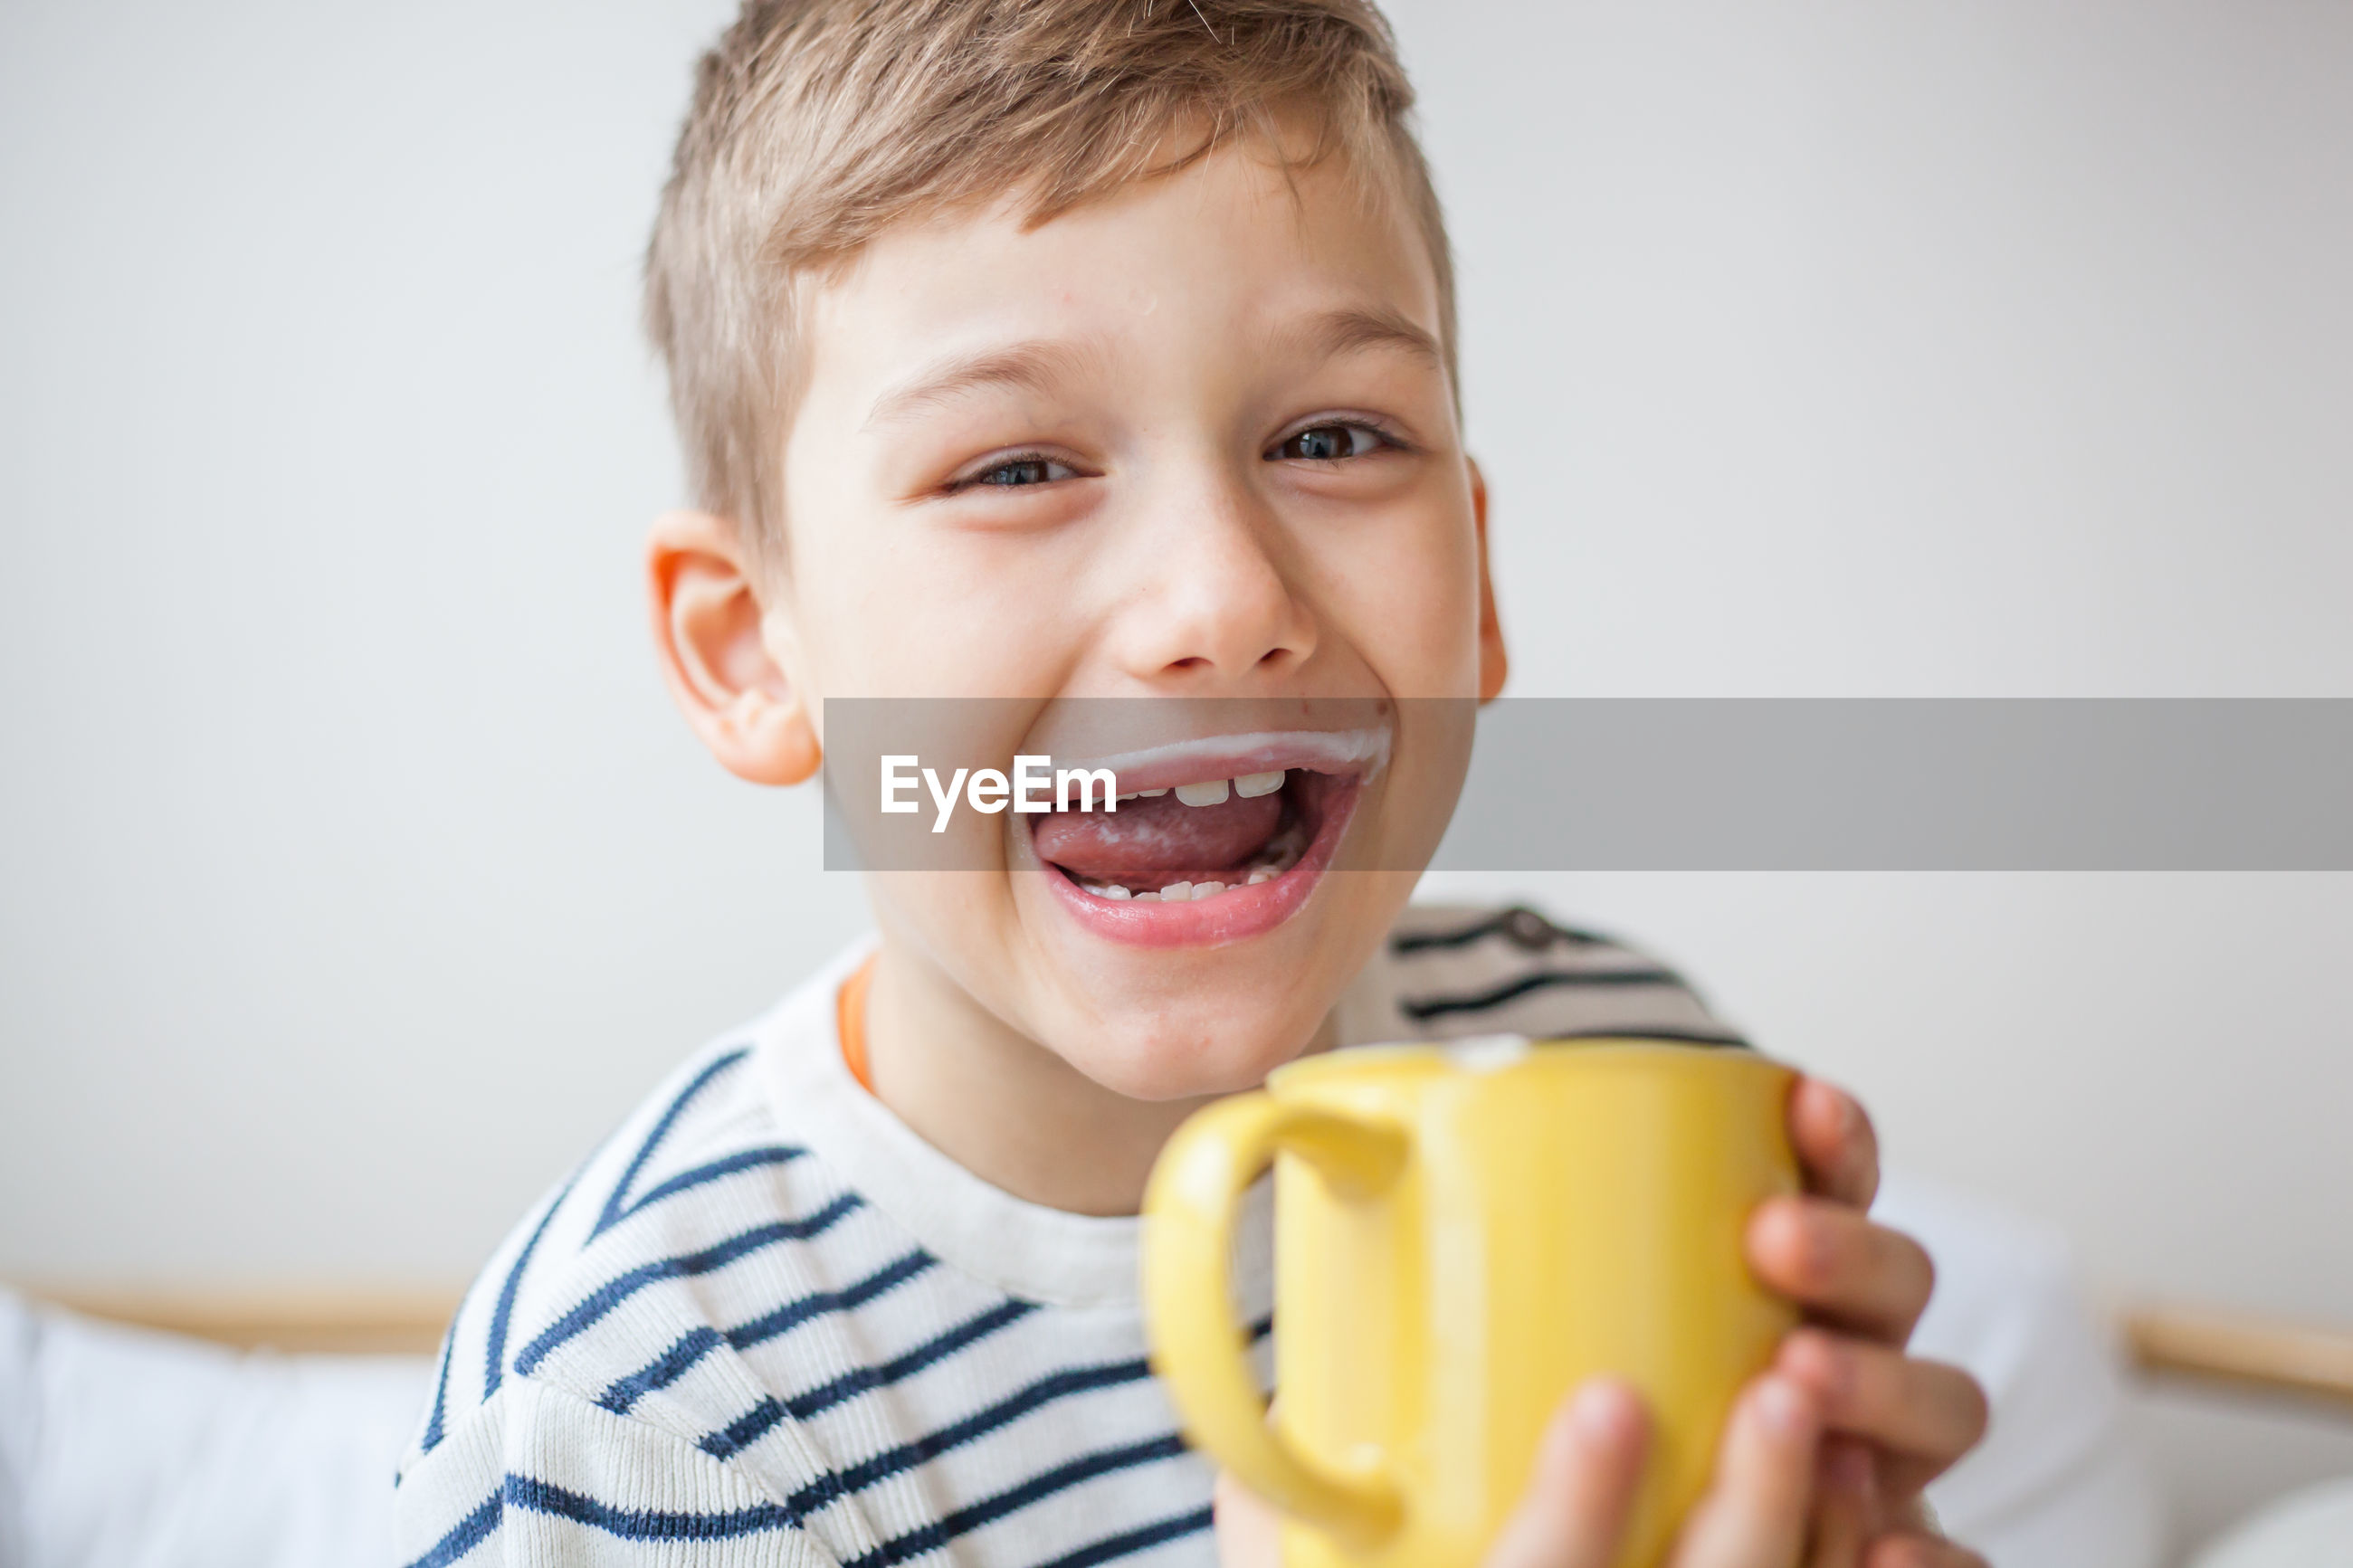 Portrait of smiling boy holding cup against wall